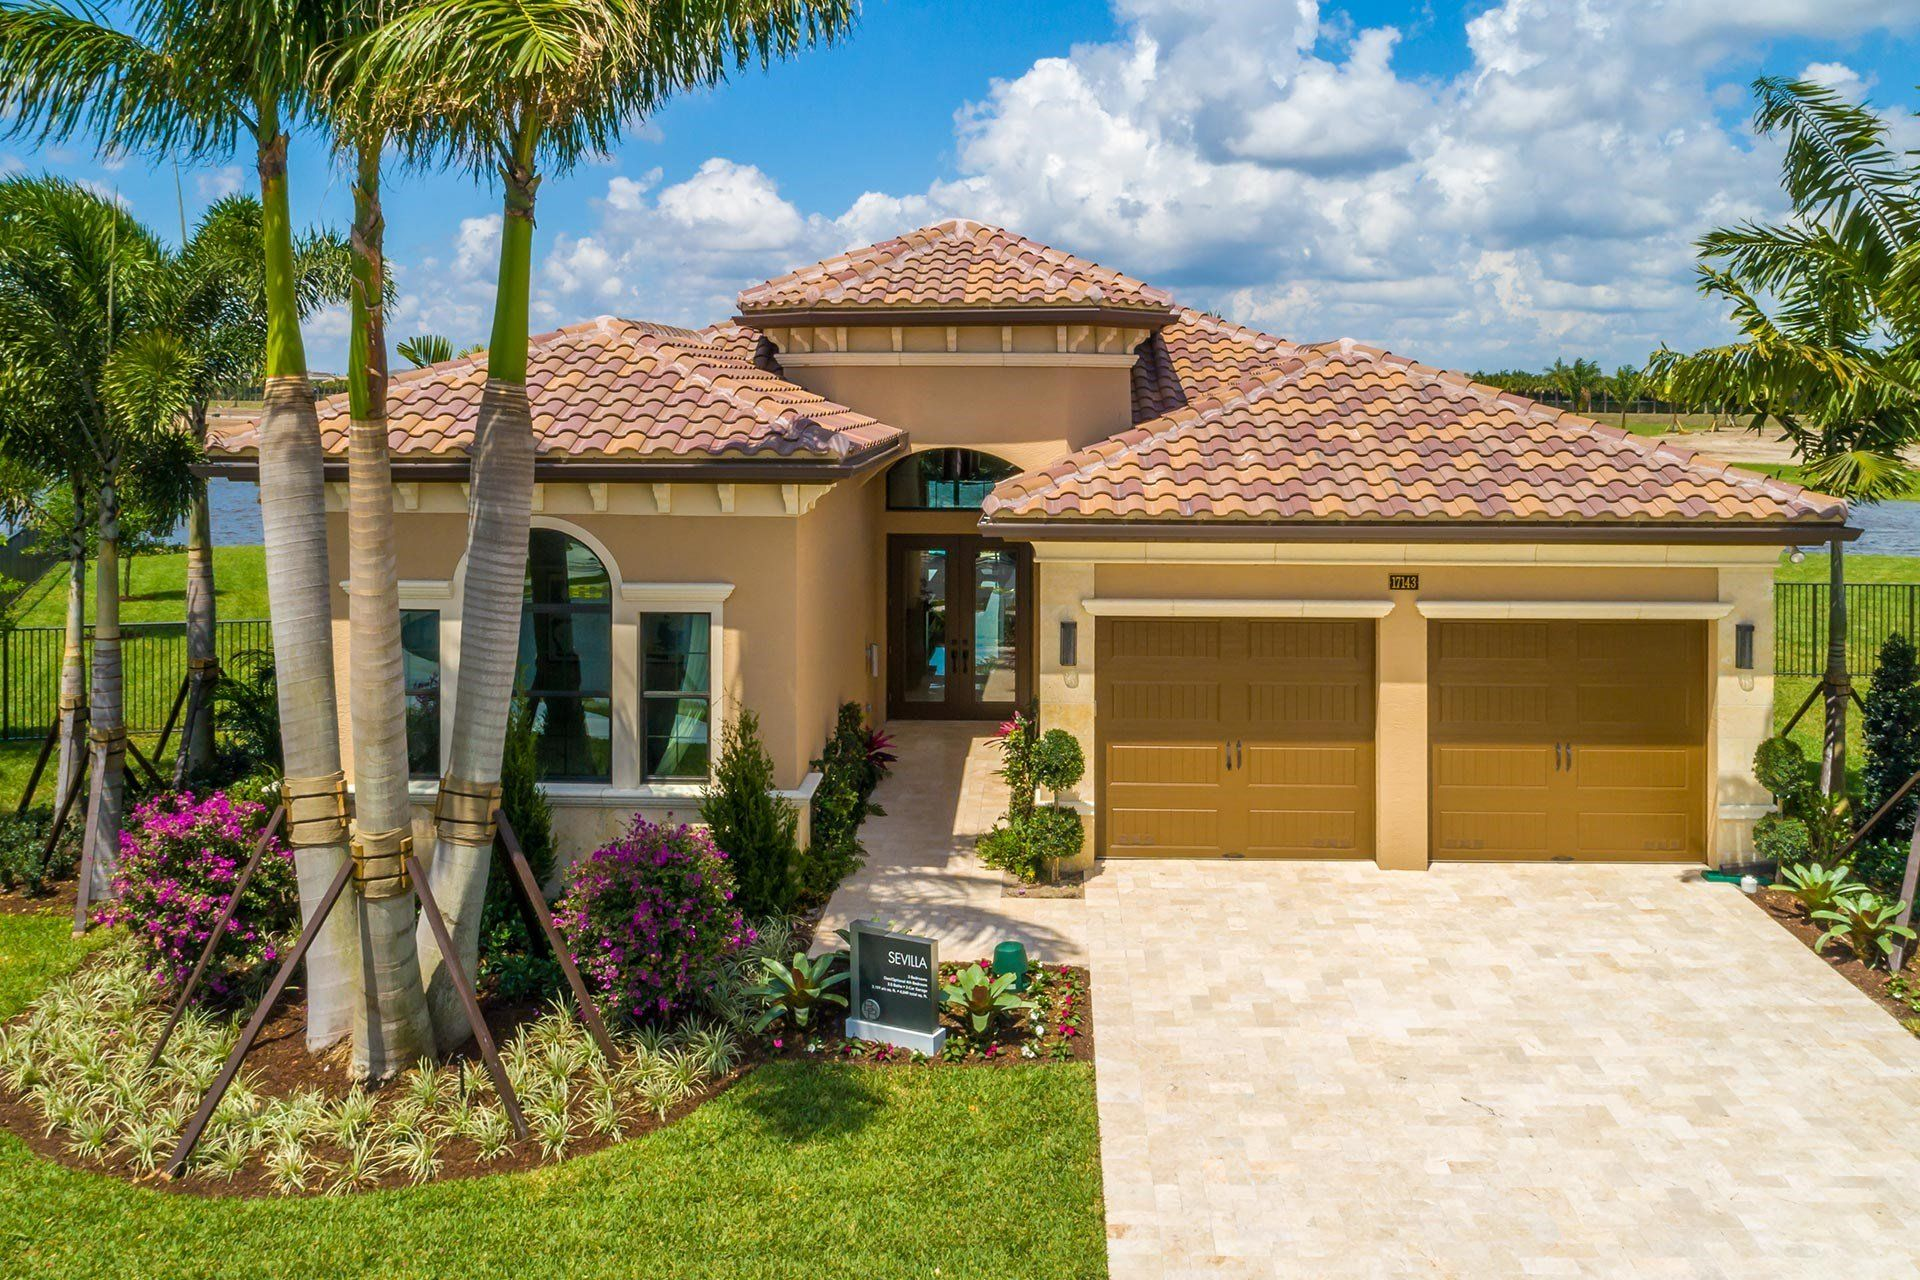 Move In Ready Homes In Boca Raton Florida Real Estate Gl Homes In 2020 Florida Real Estate Patio Upgrade Design Your Dream House